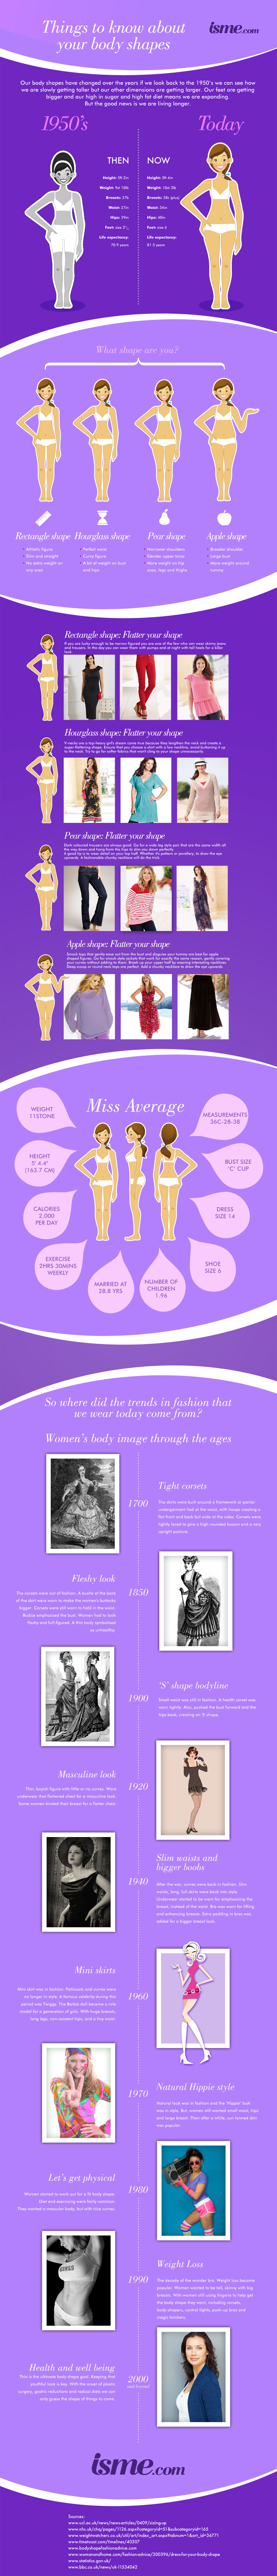 Ladies: Things To Know About Your Body Shape